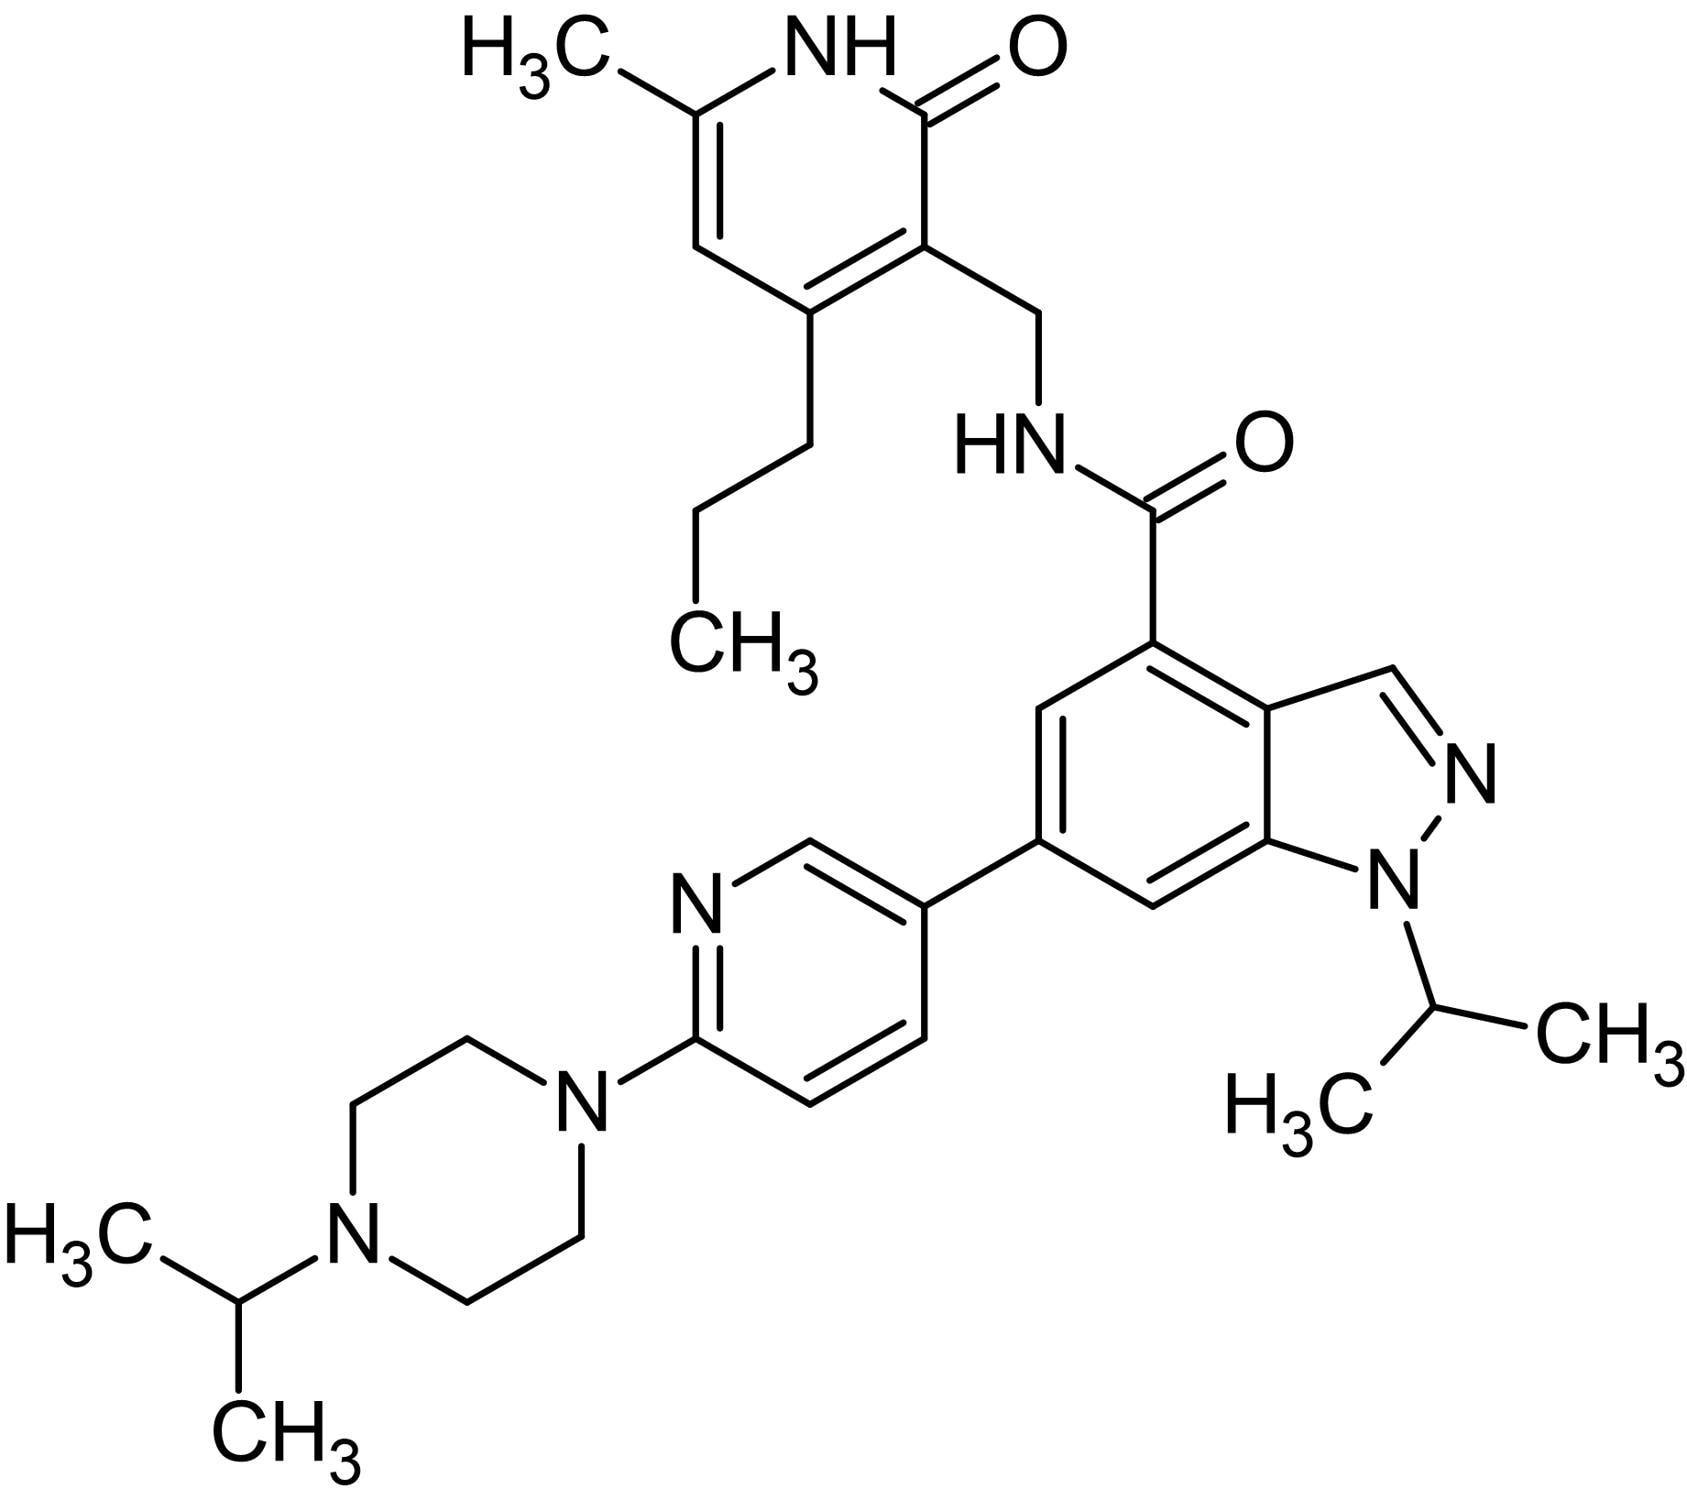 Chemical Structure - UNC1999, EZH2 methyltransferase inhibitor (ab146152)